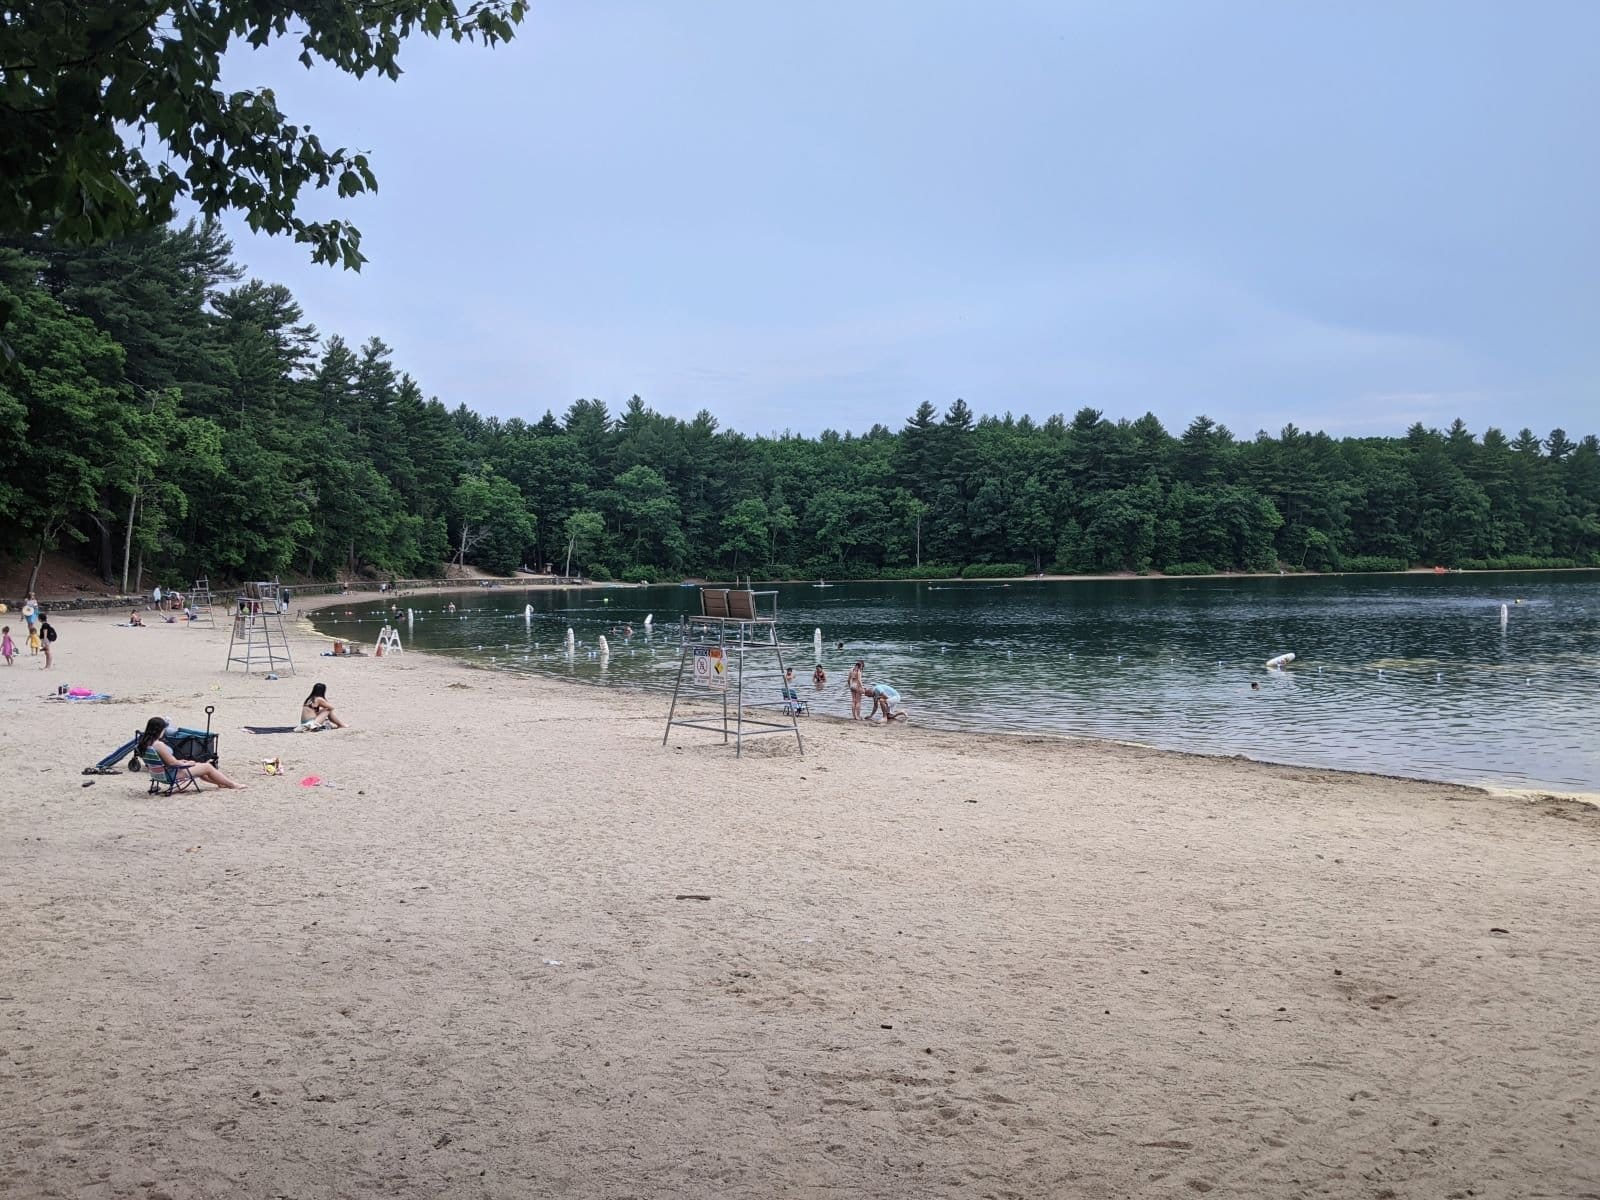 Walden Pond on a cloudy day, with only a handful of people on the beach